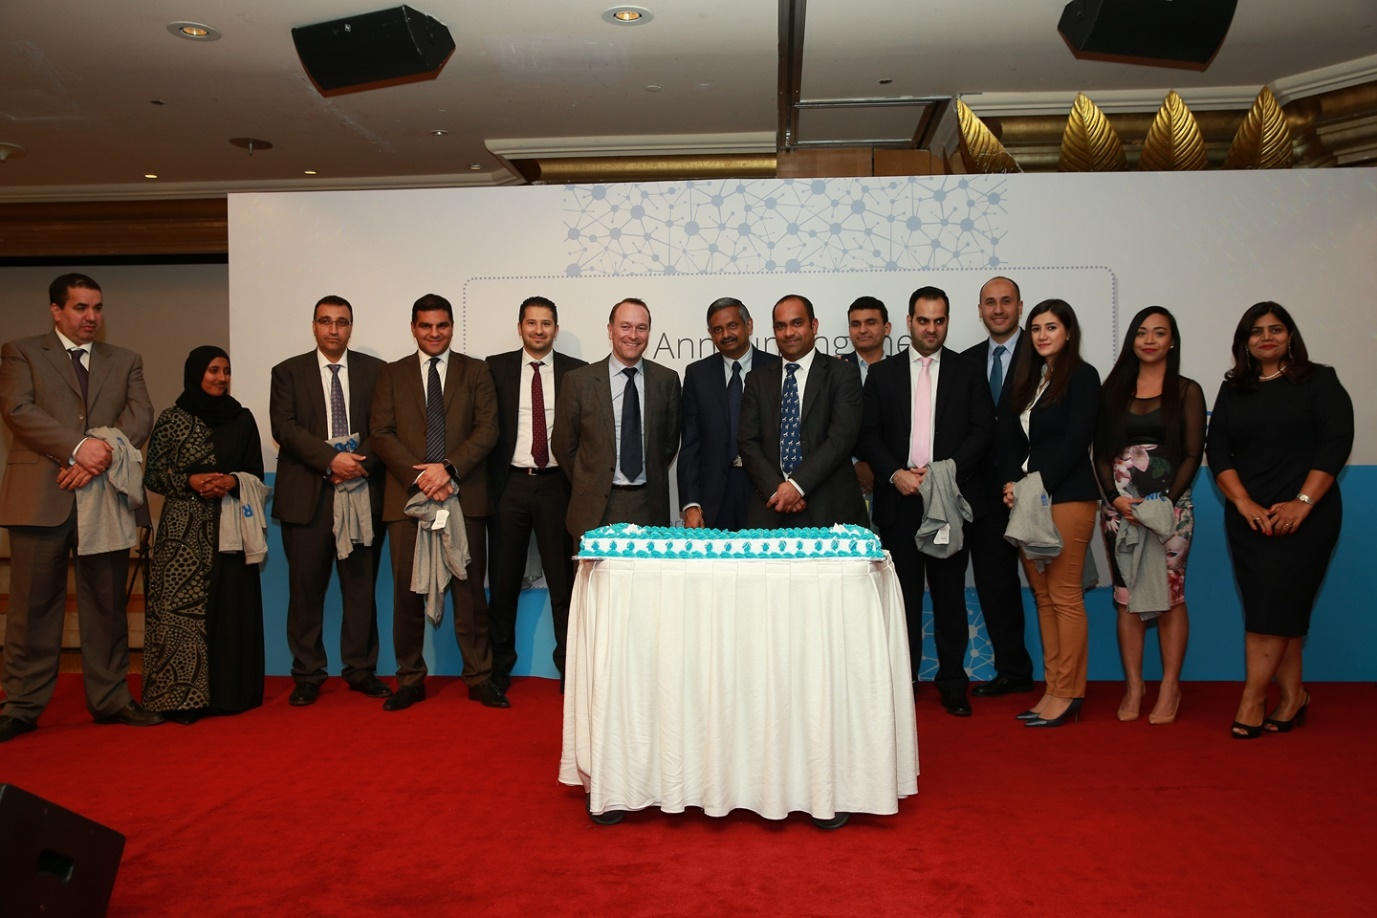 Bahwan CyberTek Announces Strategic Partnership with TIBCO in Middle East at Executive Event